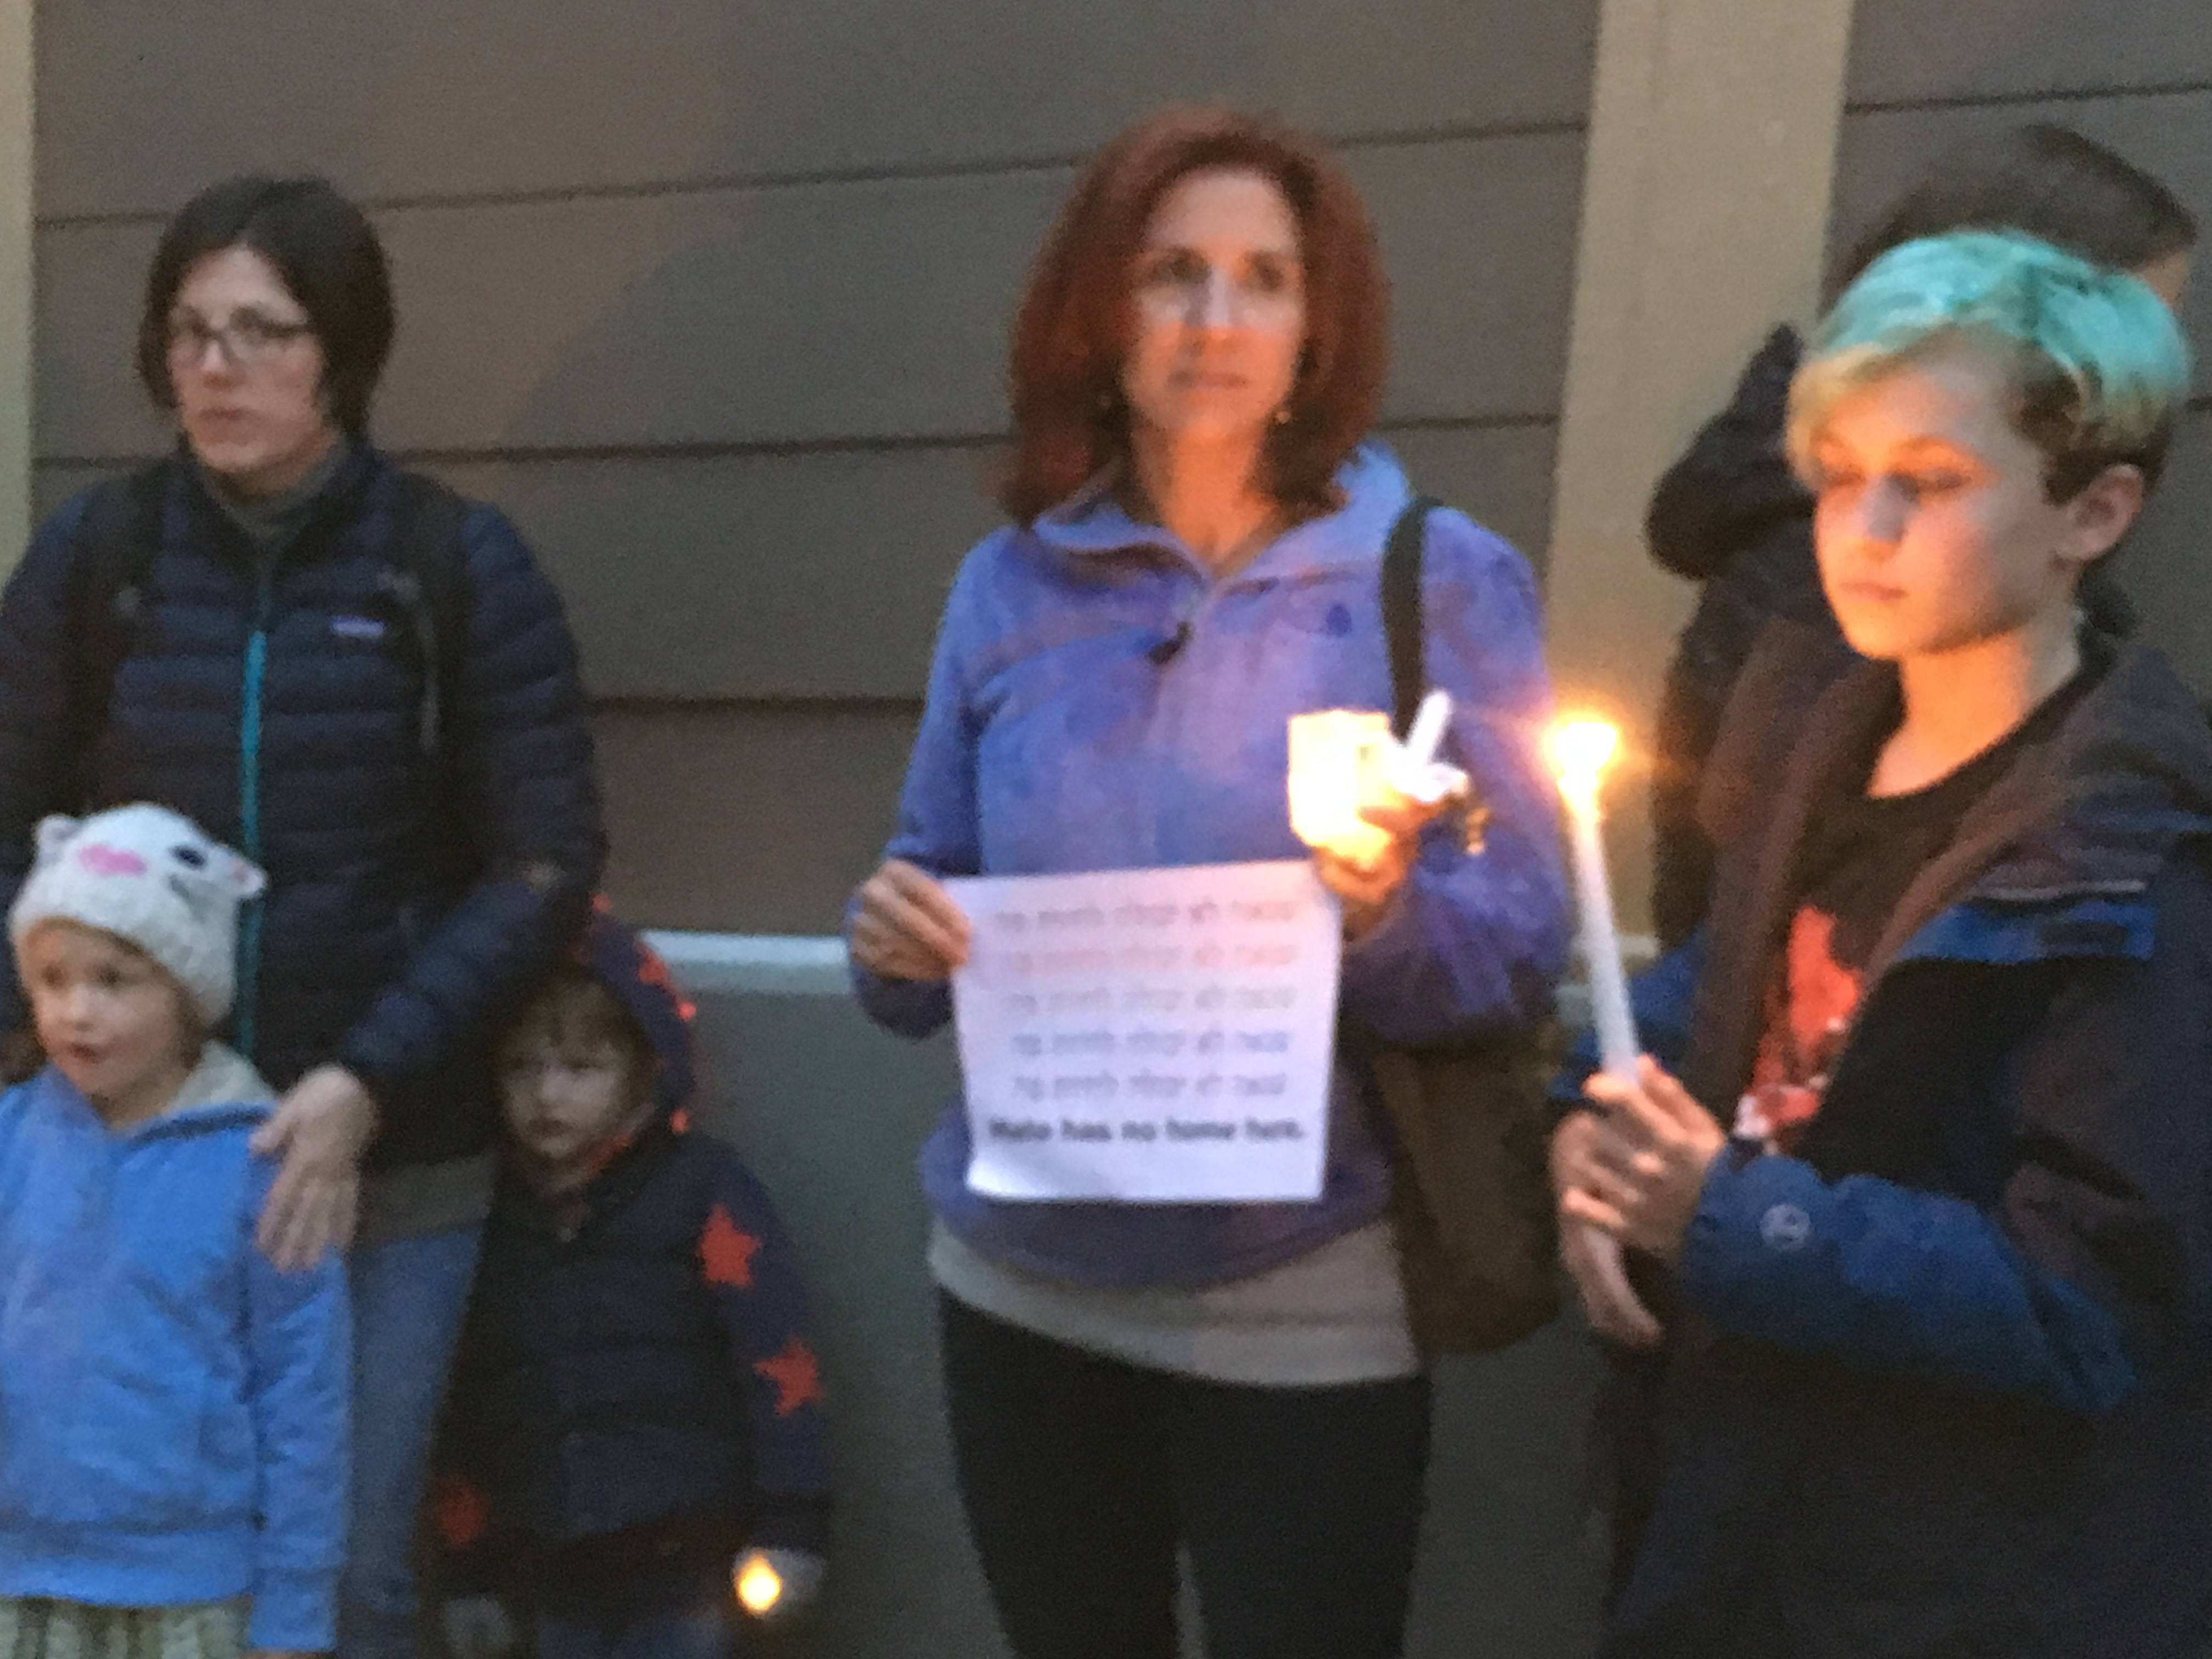 Local Residents Hold 'Hate Has No Home Here' Candlelight Peace Patrol